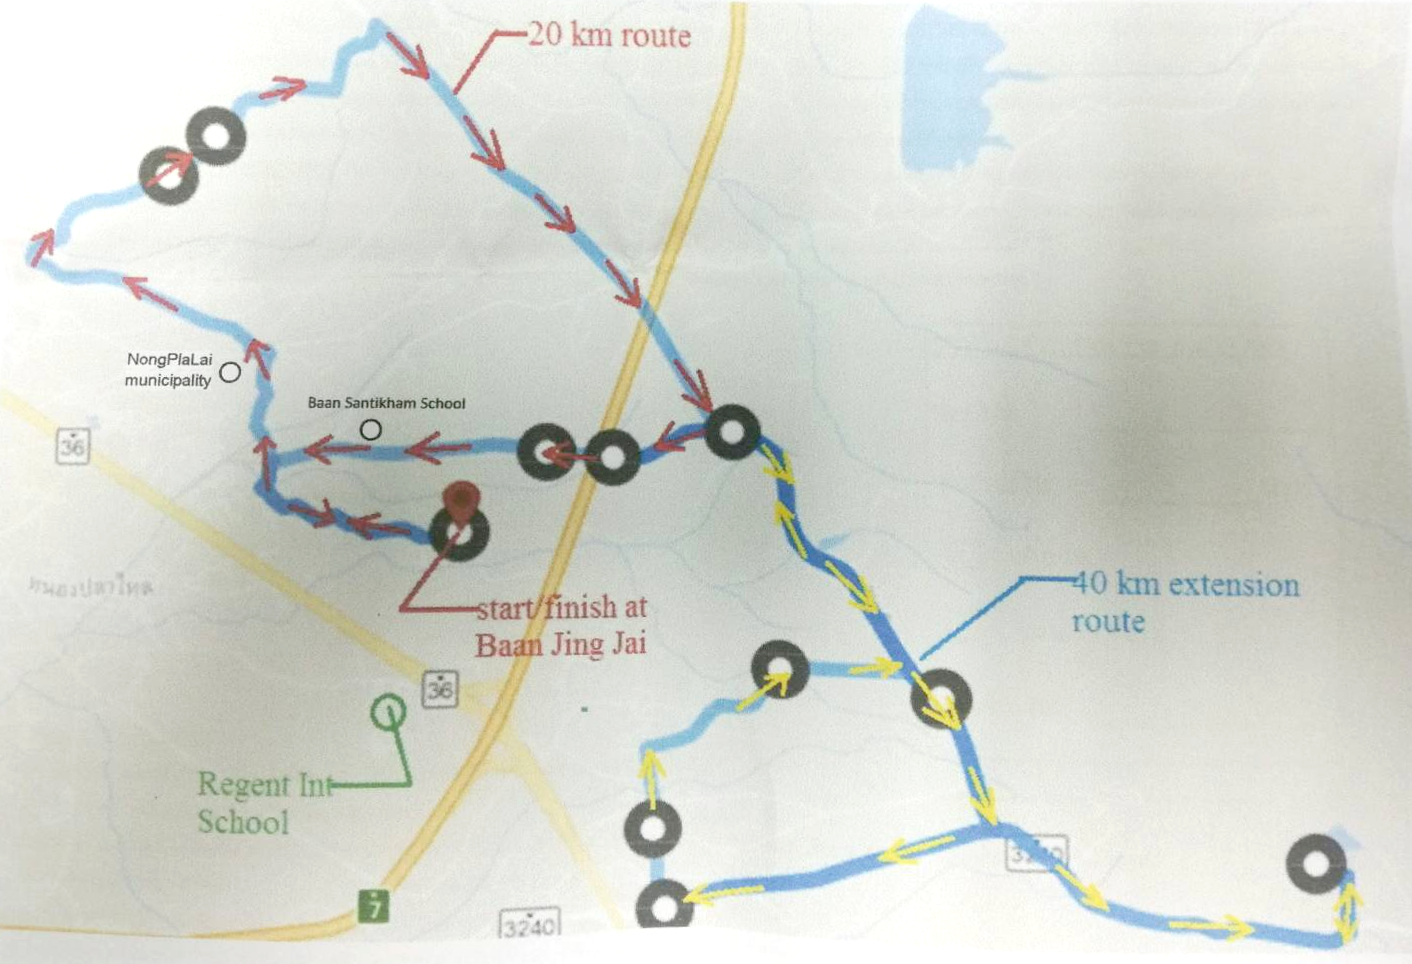 Map of the bike routes for the event.